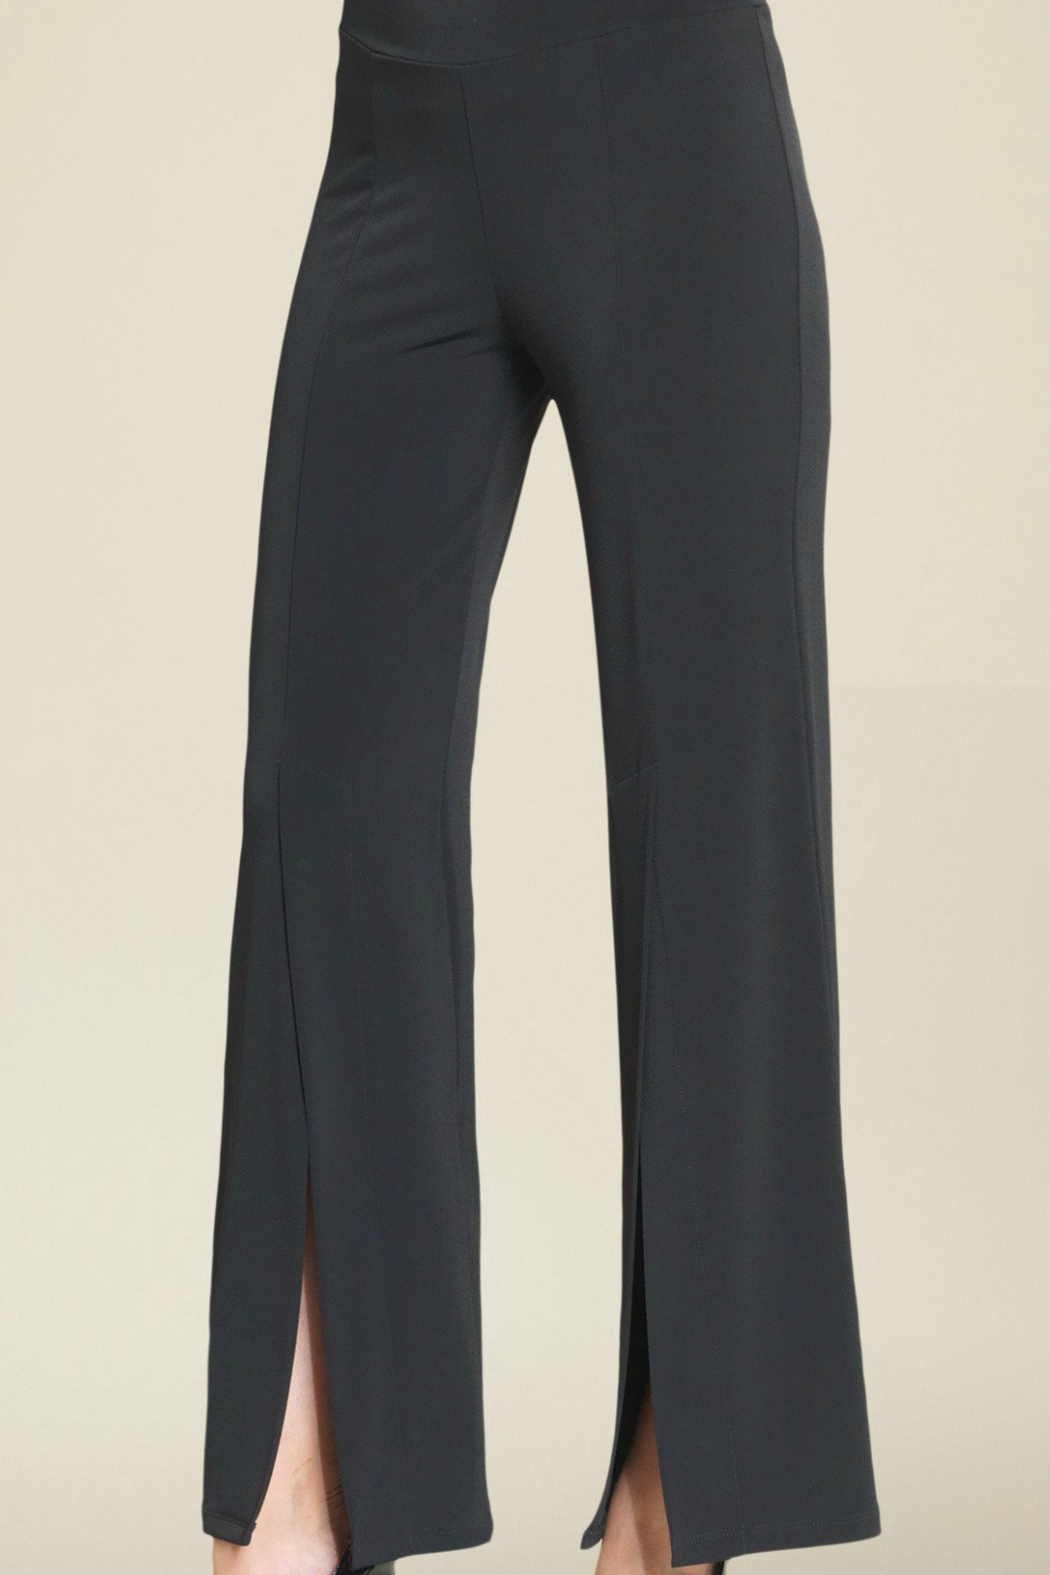 Clara Sunwoo Soft Knit Pants - Front Cropped Image